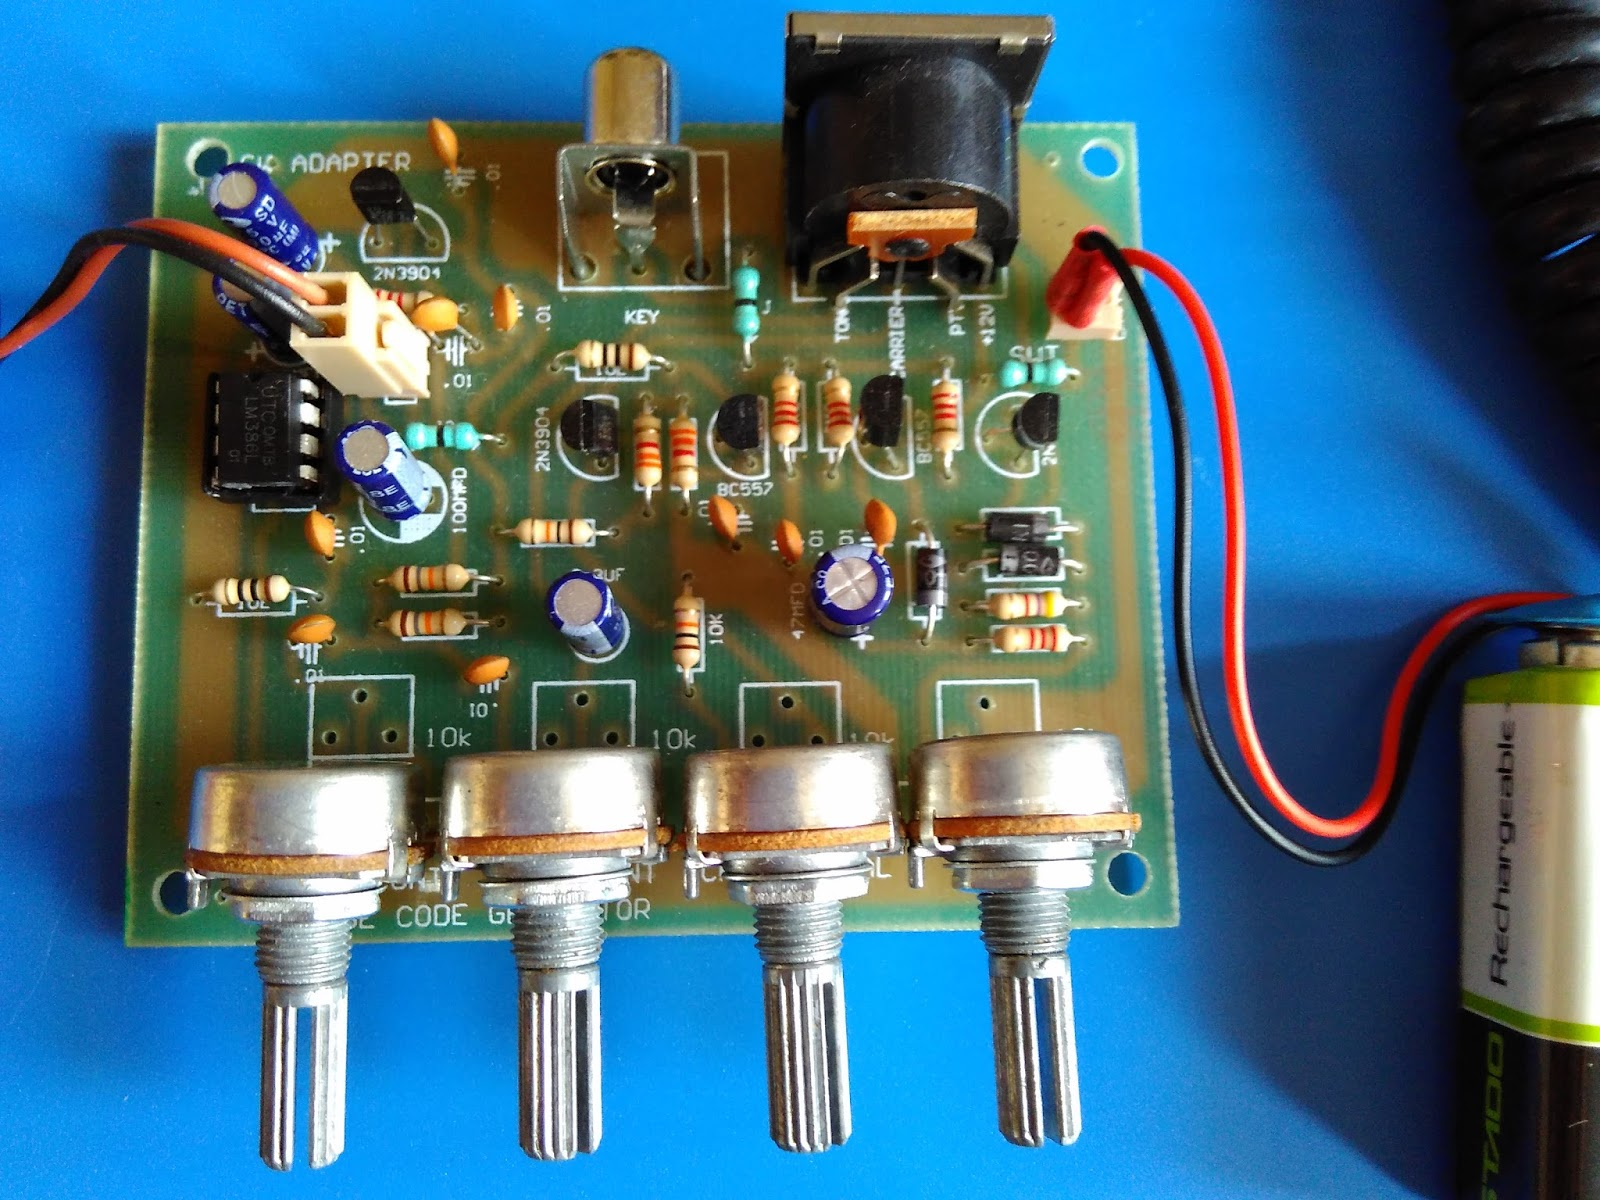 Cw Tone Generator For Bitx And Other Ssb Transcievers Schematic